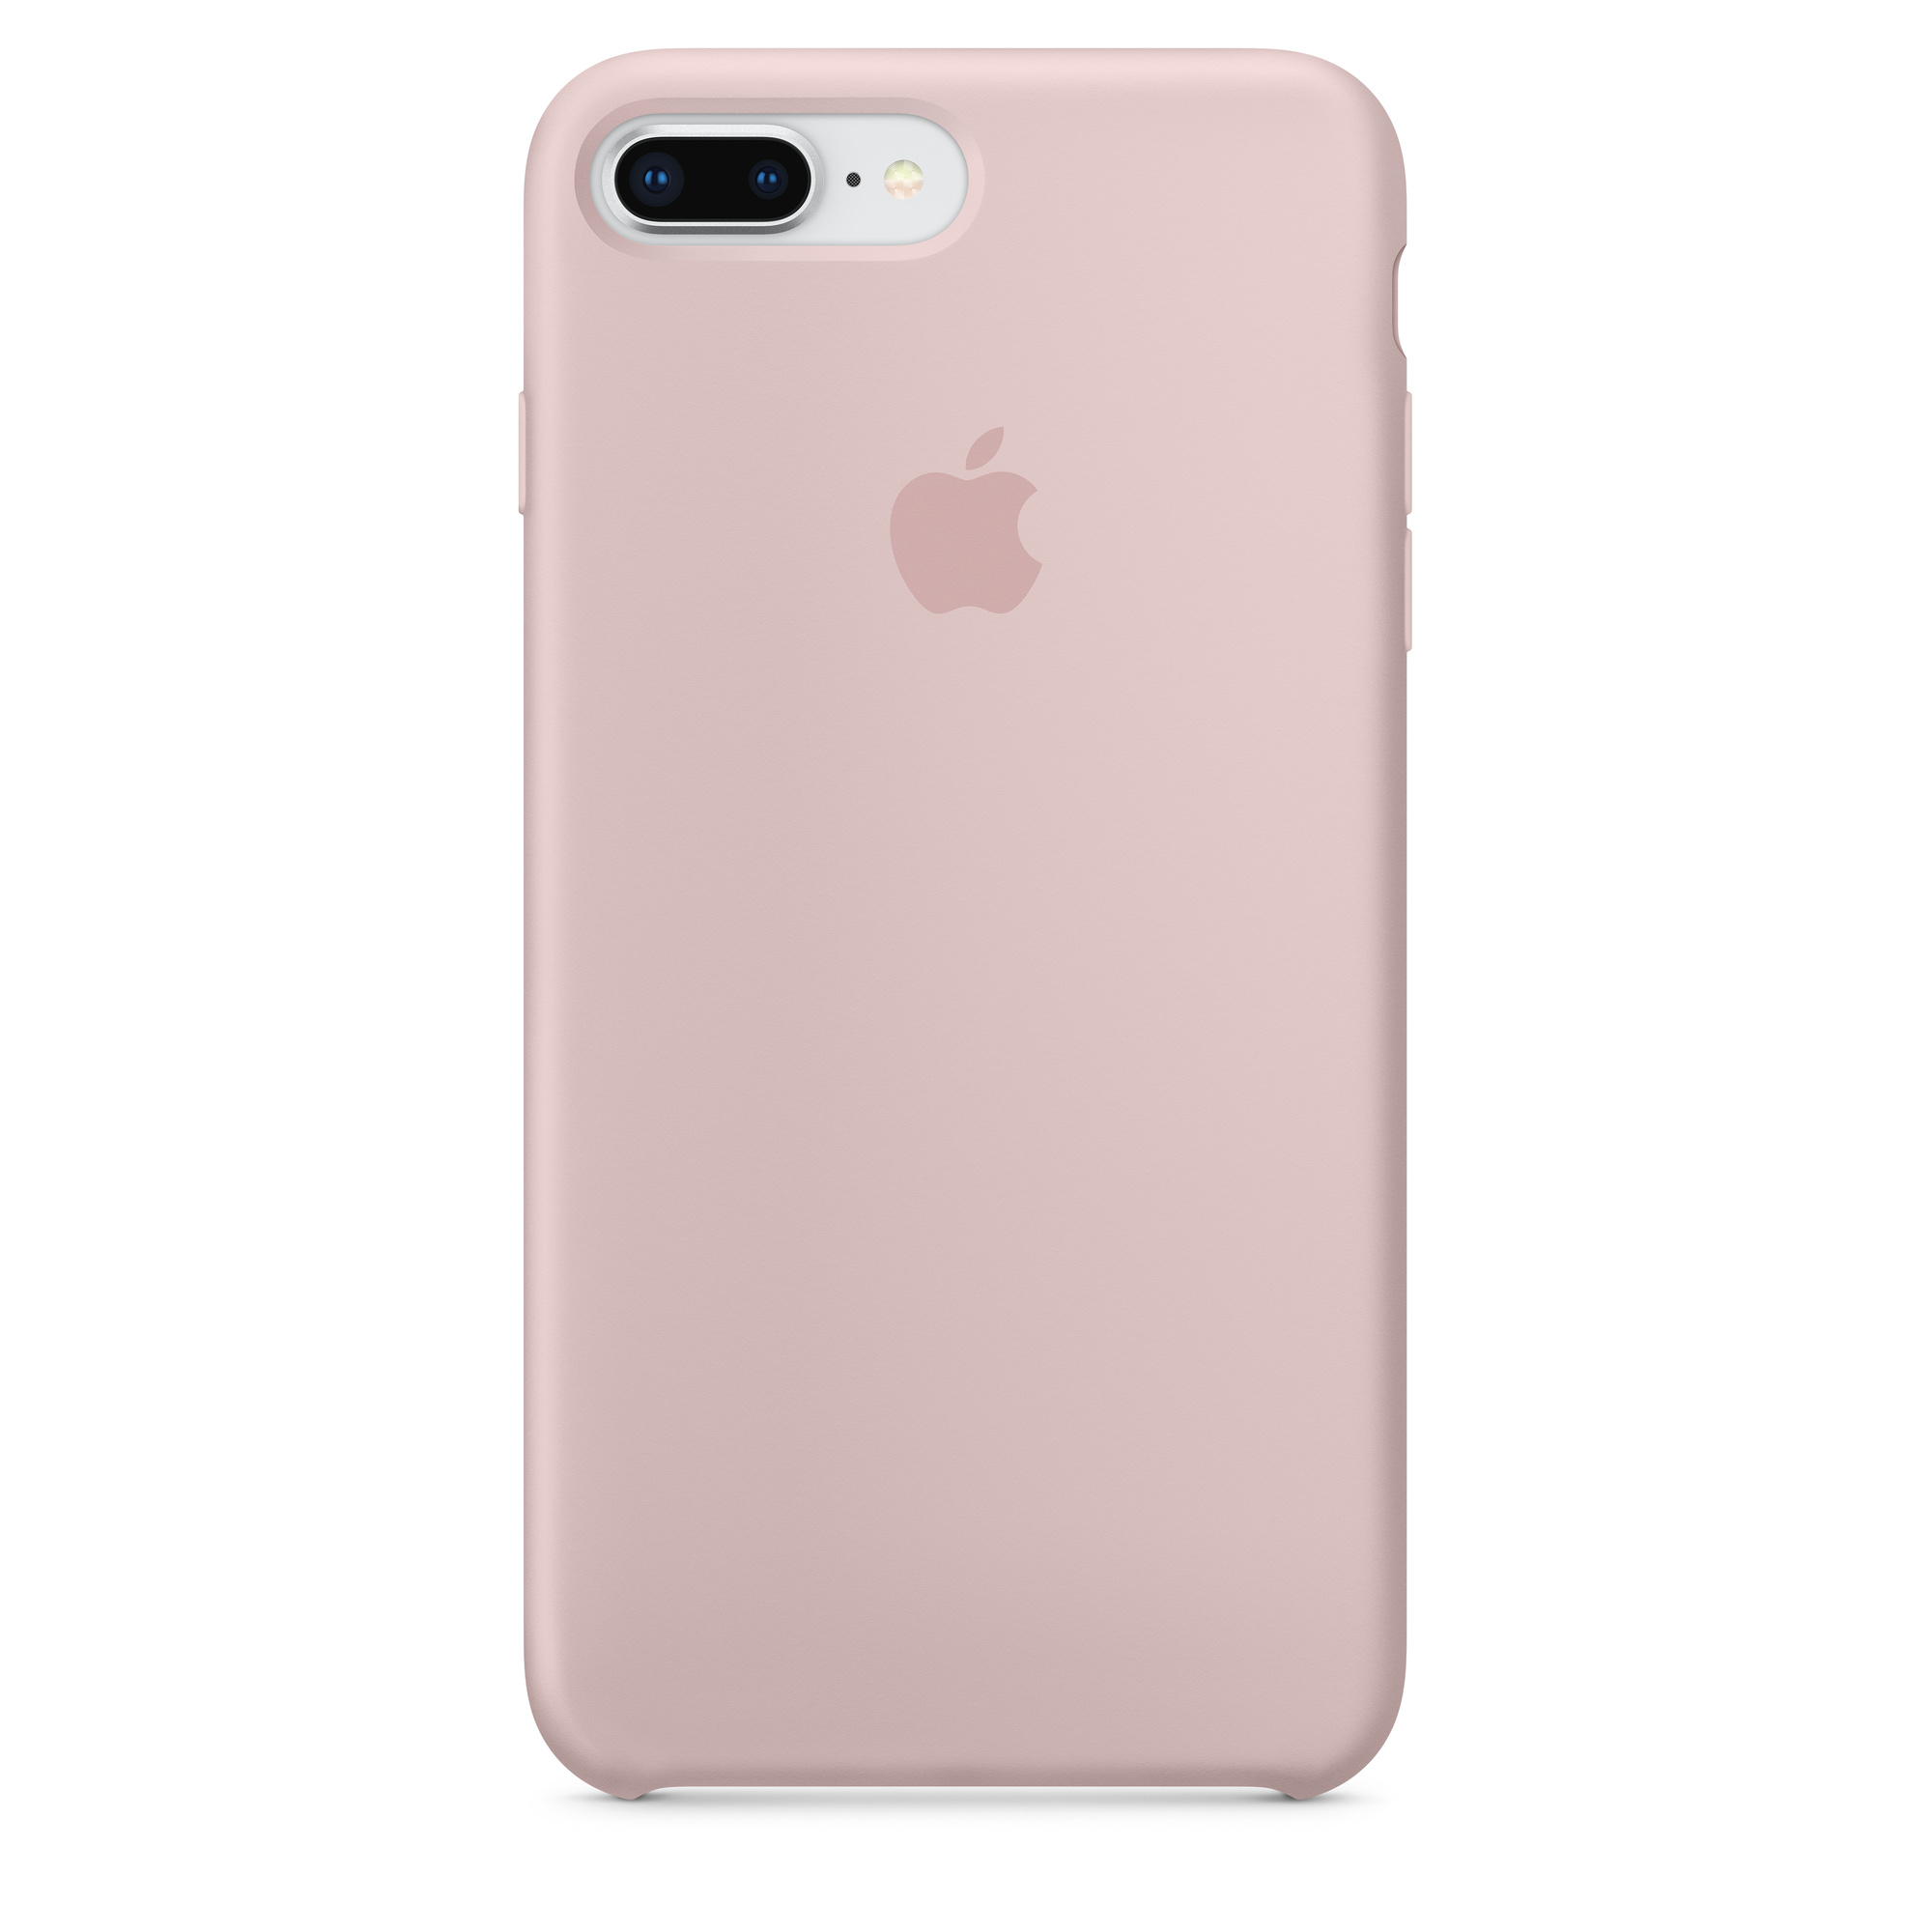 separation shoes 46ed3 45607 iPhone 8 Plus / 7 Plus Silicone Case — Pink Sand